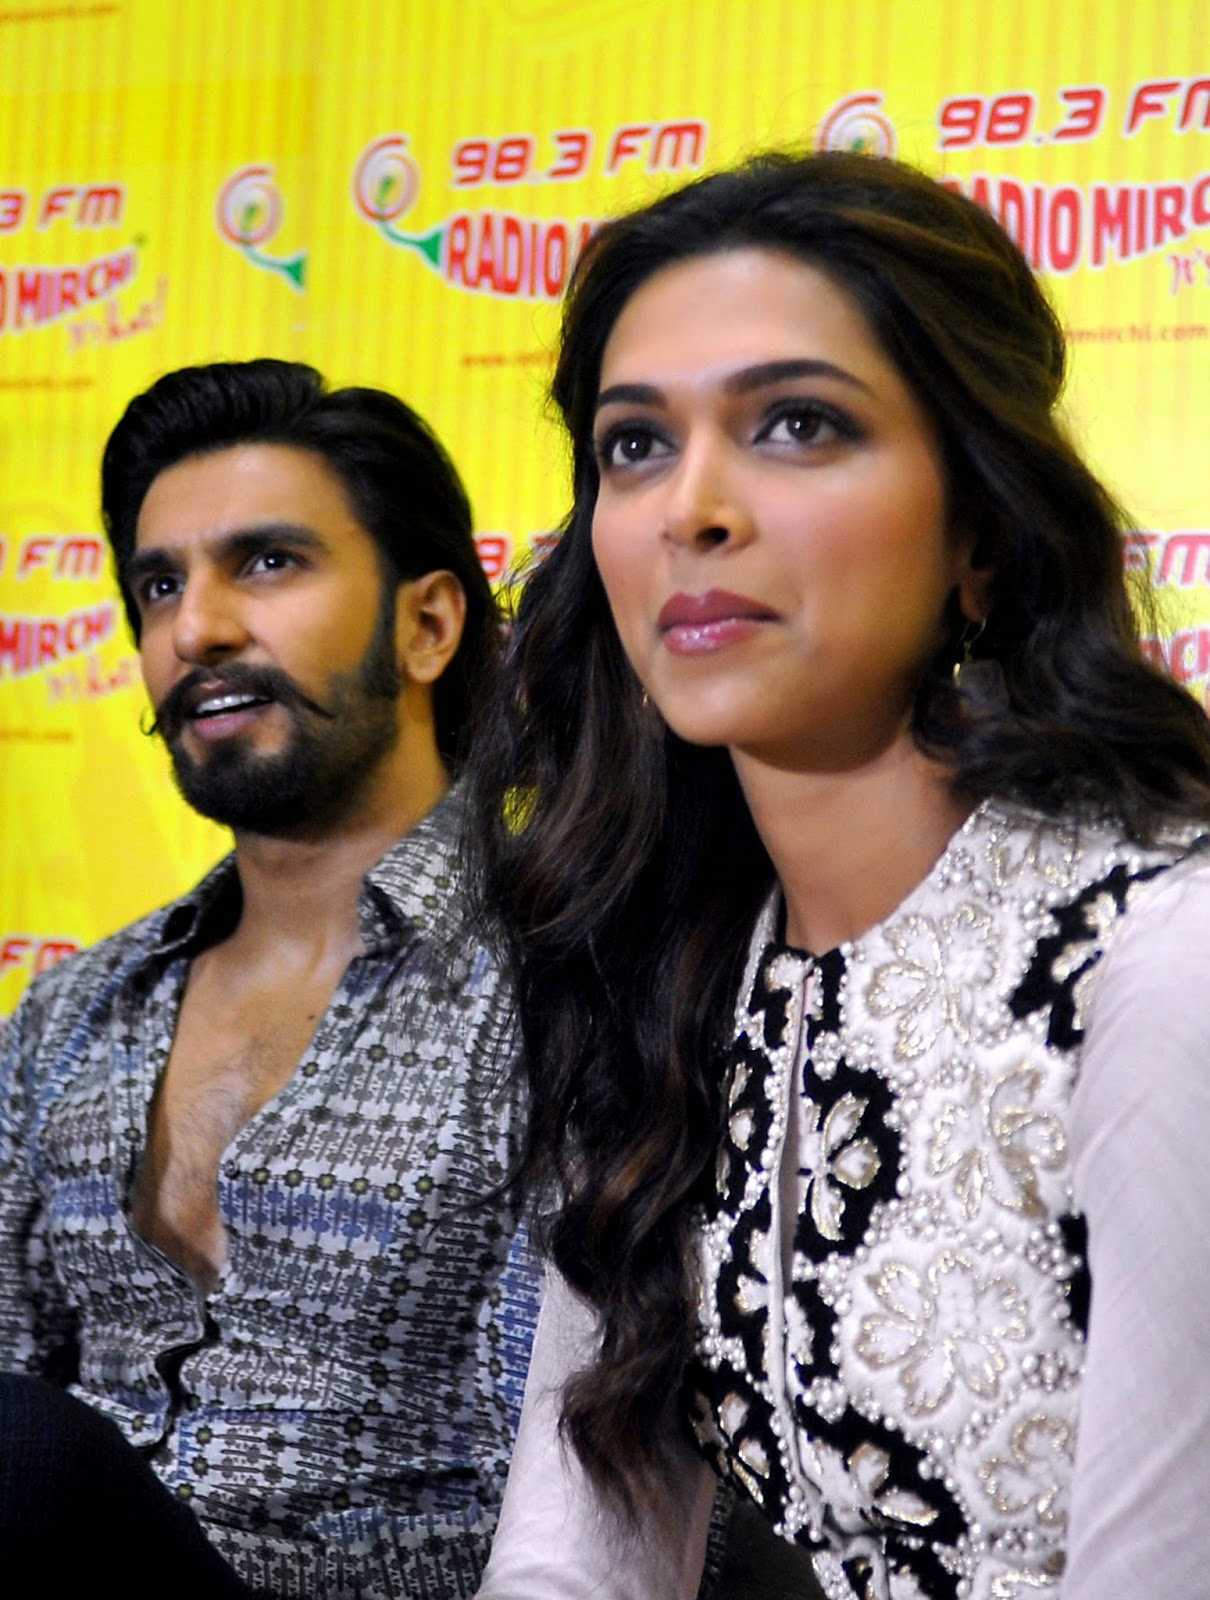 Bollywood, Bollywood actress, Bollywood scandal, Deepika and Ranveer, Deepika and Ranveer Love Affair, Deepika Padukone, Deepika Padukone and  Ranveer Singh, Deepika Photo, Entertainment, Love Affair, Showbiz,